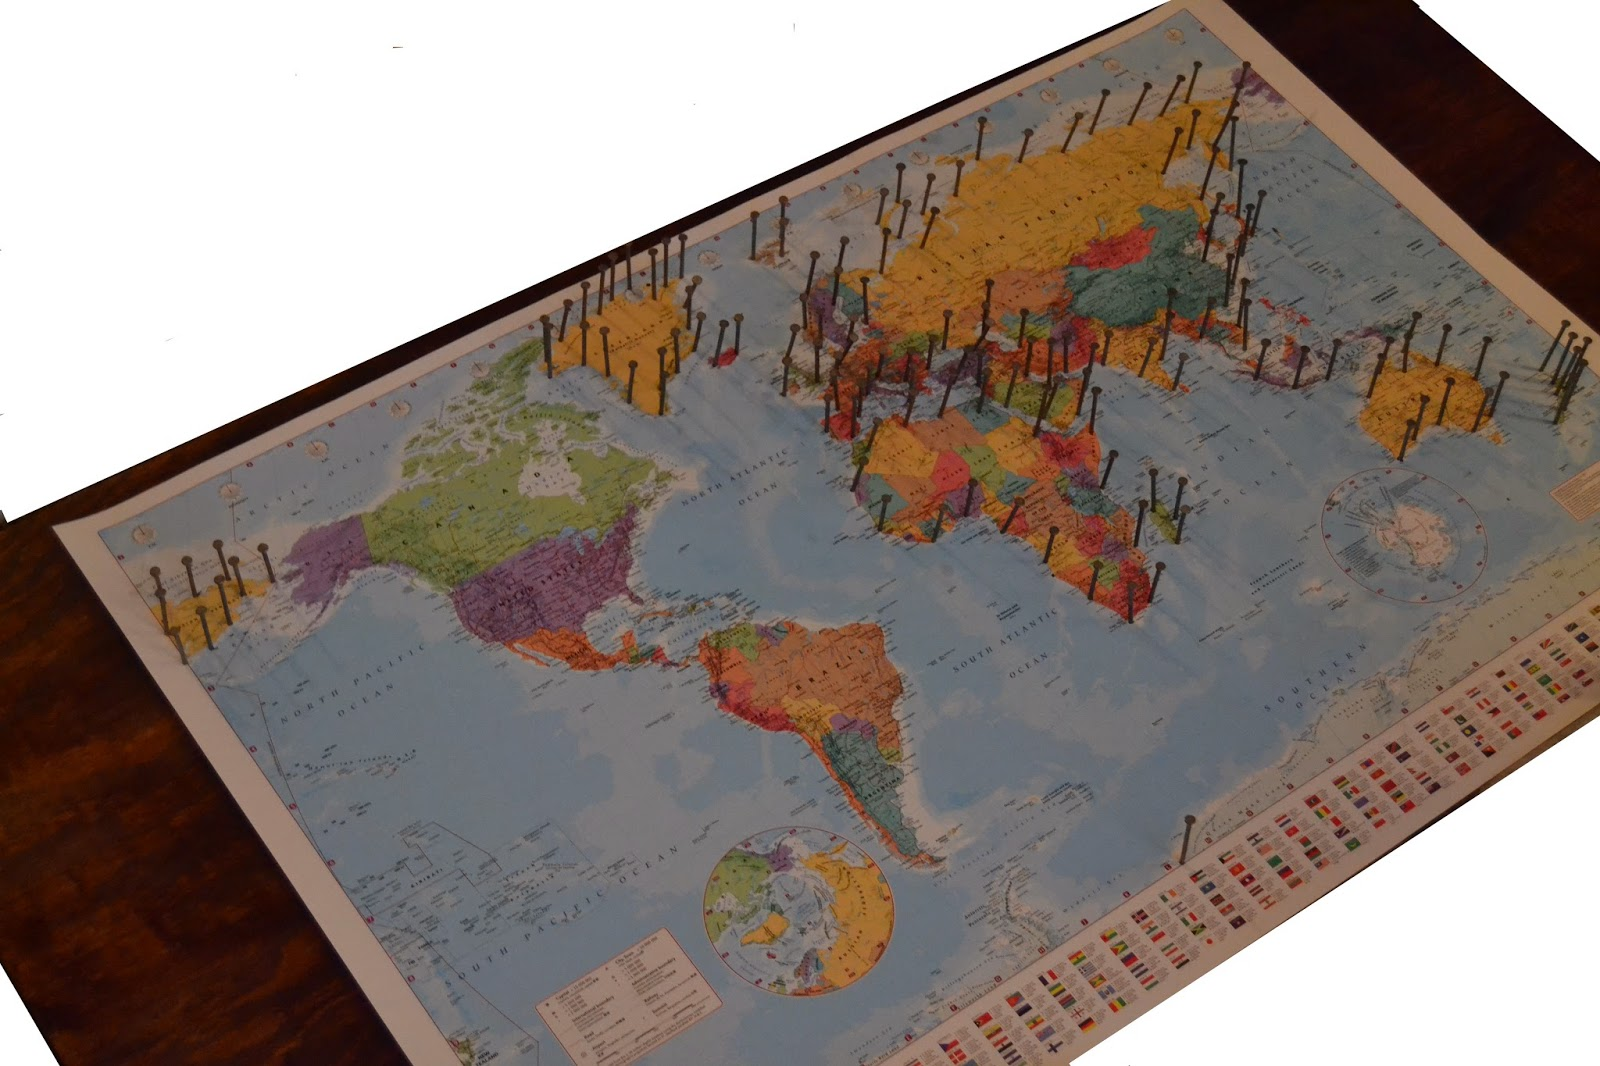 HOW TO STRING ART WORLD MAP